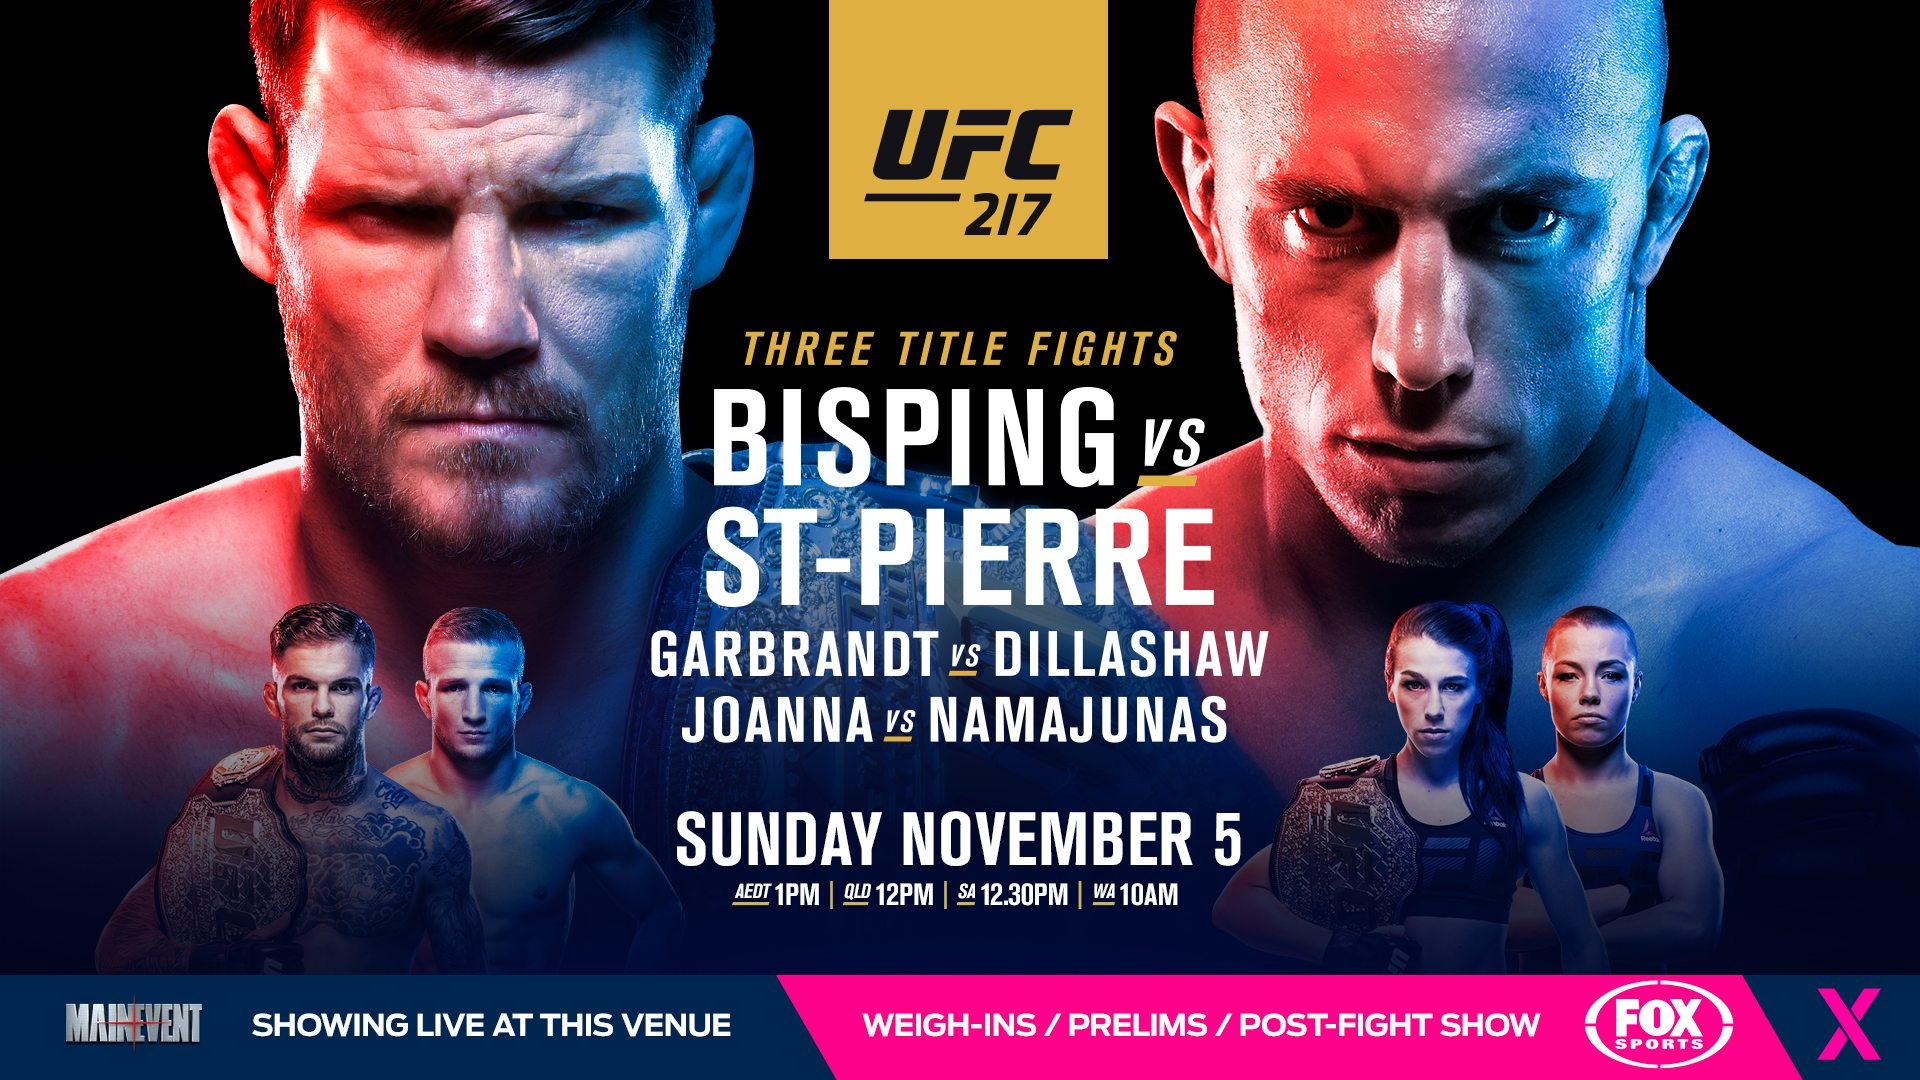 UFC 217 Bisping vs St Pierre   Red Cow Hotel 1920x1080